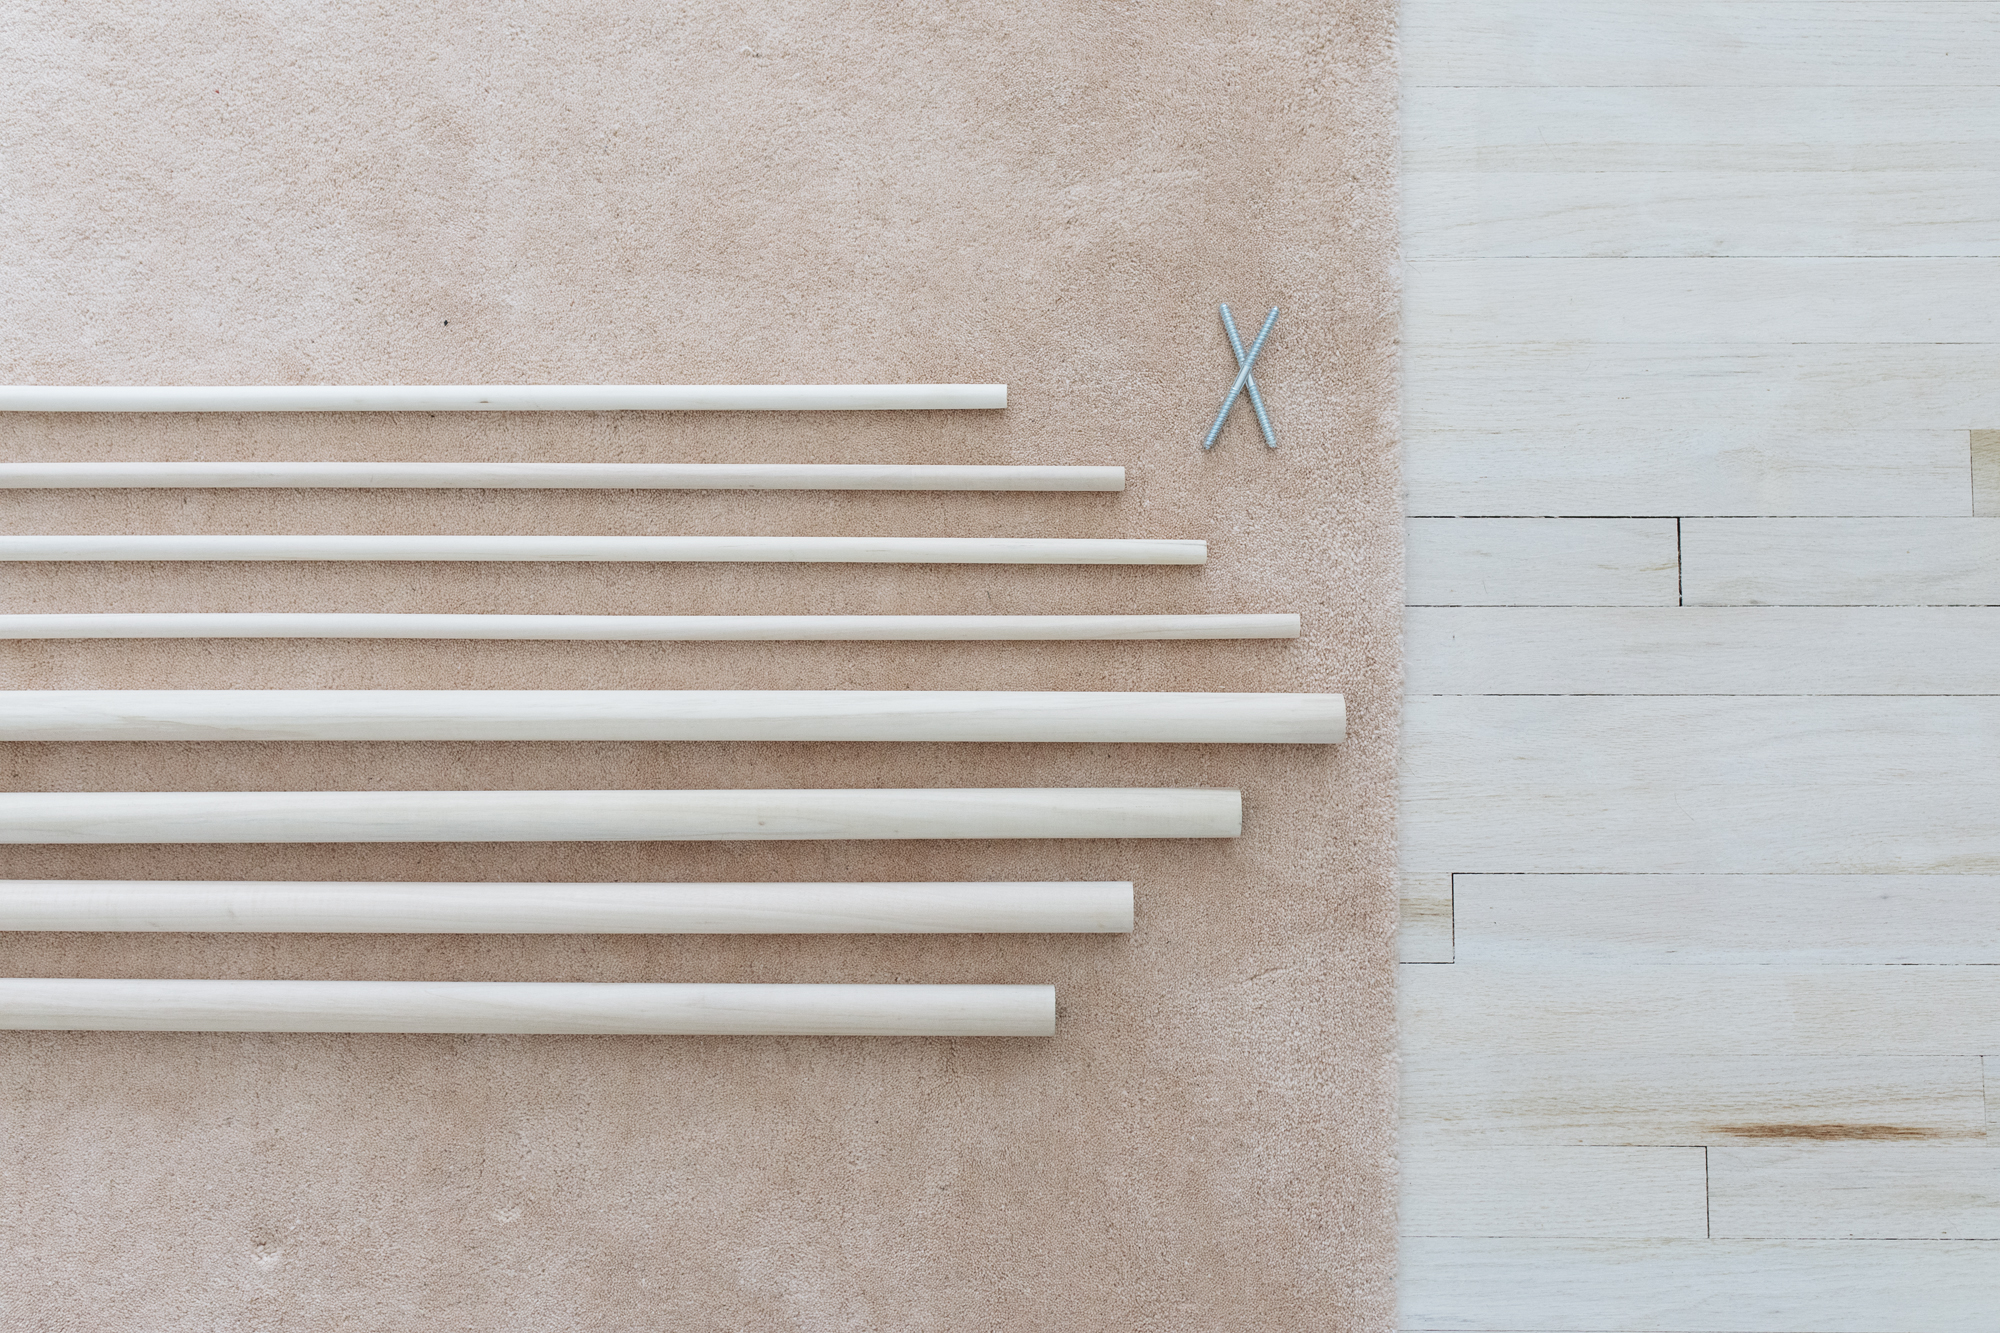 I loved the way dowel ladders look so I found some dowels and we got started on our diy